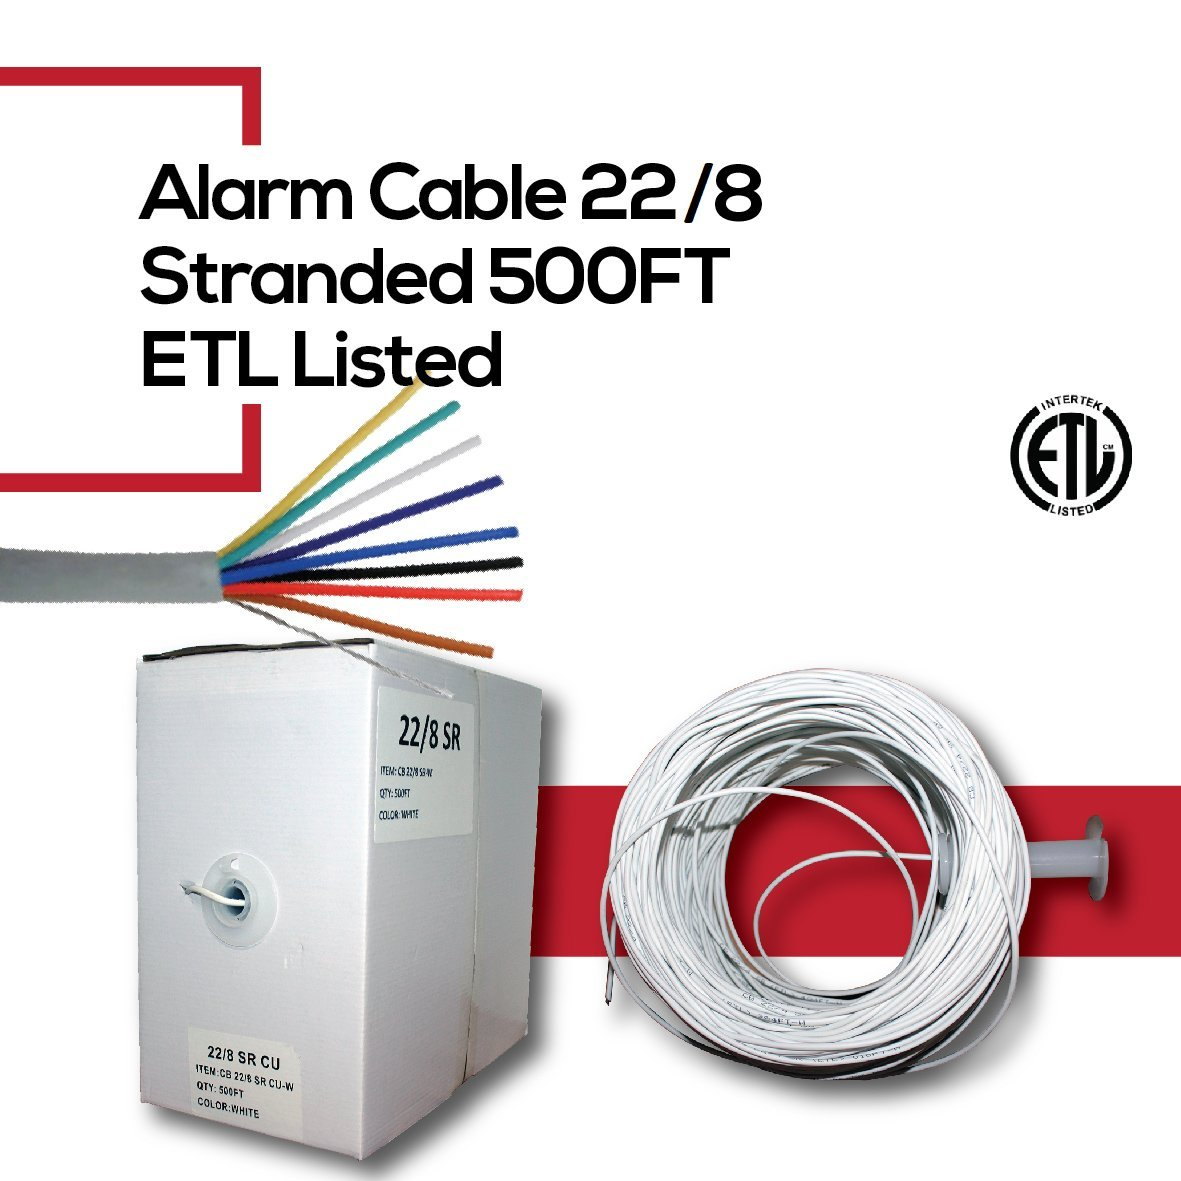 CCTVOnSales Security Burglar Alarm Wire Cable 22/8 22AWG Stranded 500 FT White in-Wall CMR Rated Pull Box ETL Listed (Alarm Cable 22/8)